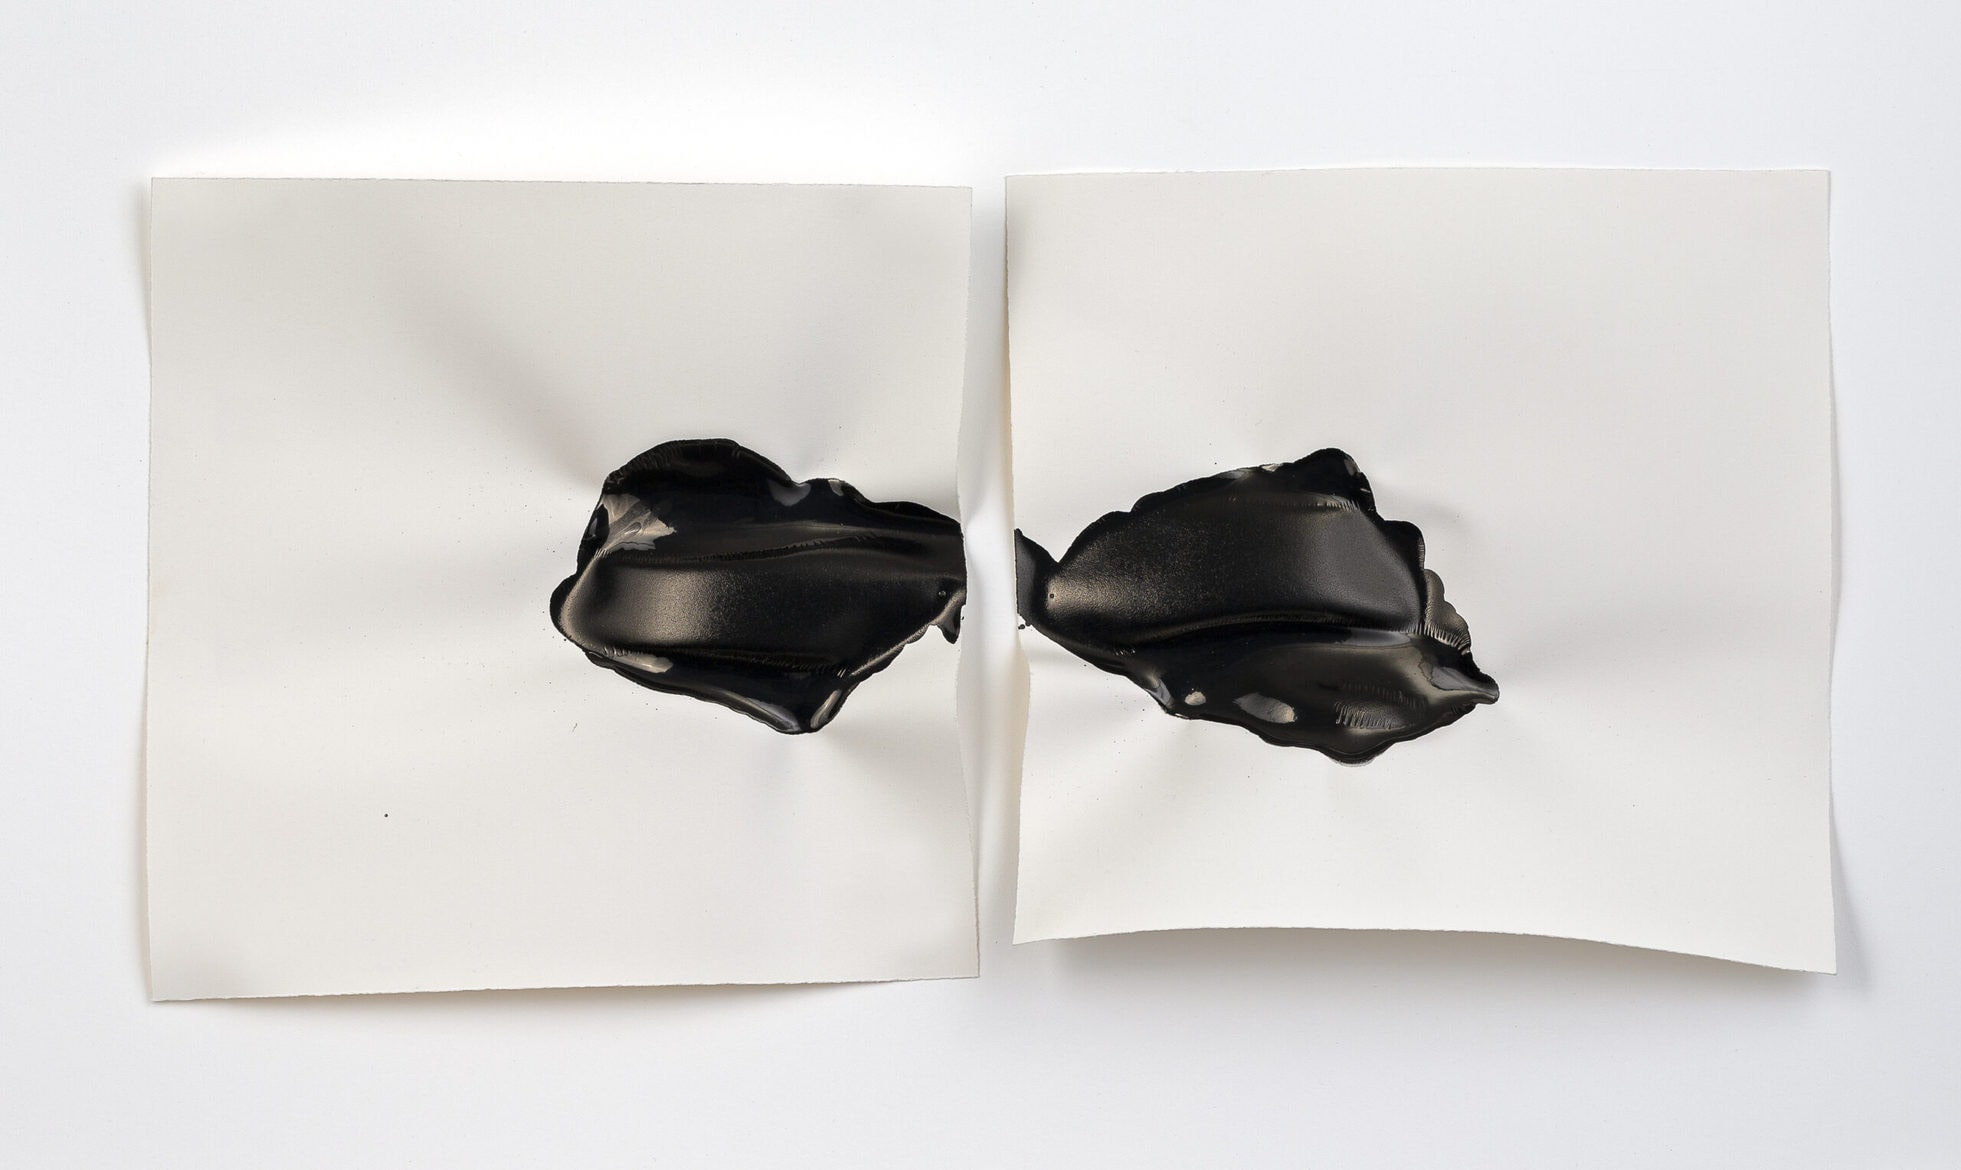 Emma Fielden, 'Confluence III', 2020, diptychs, ink on 300gsm Arches paper, framed, 74 x 45 cm